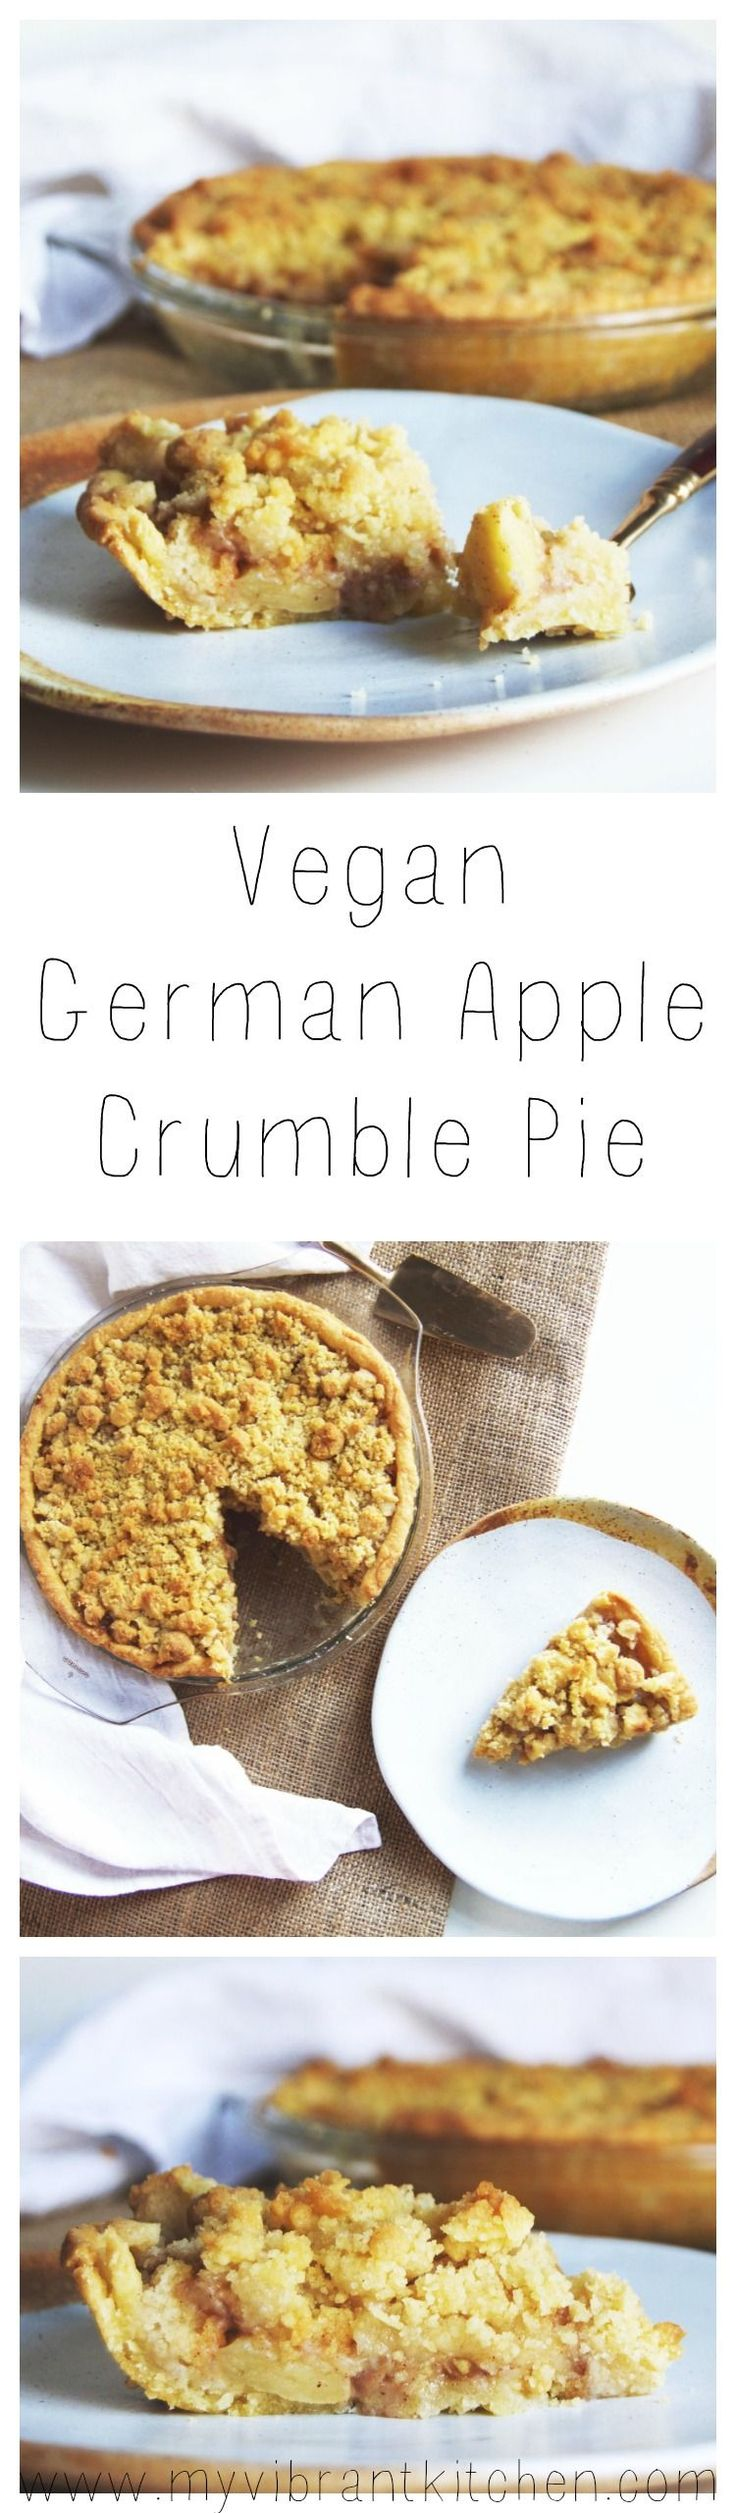 My Vibrant Kitchen | Vegan German Apple Crumble Pie | myvibrantkitchen.com